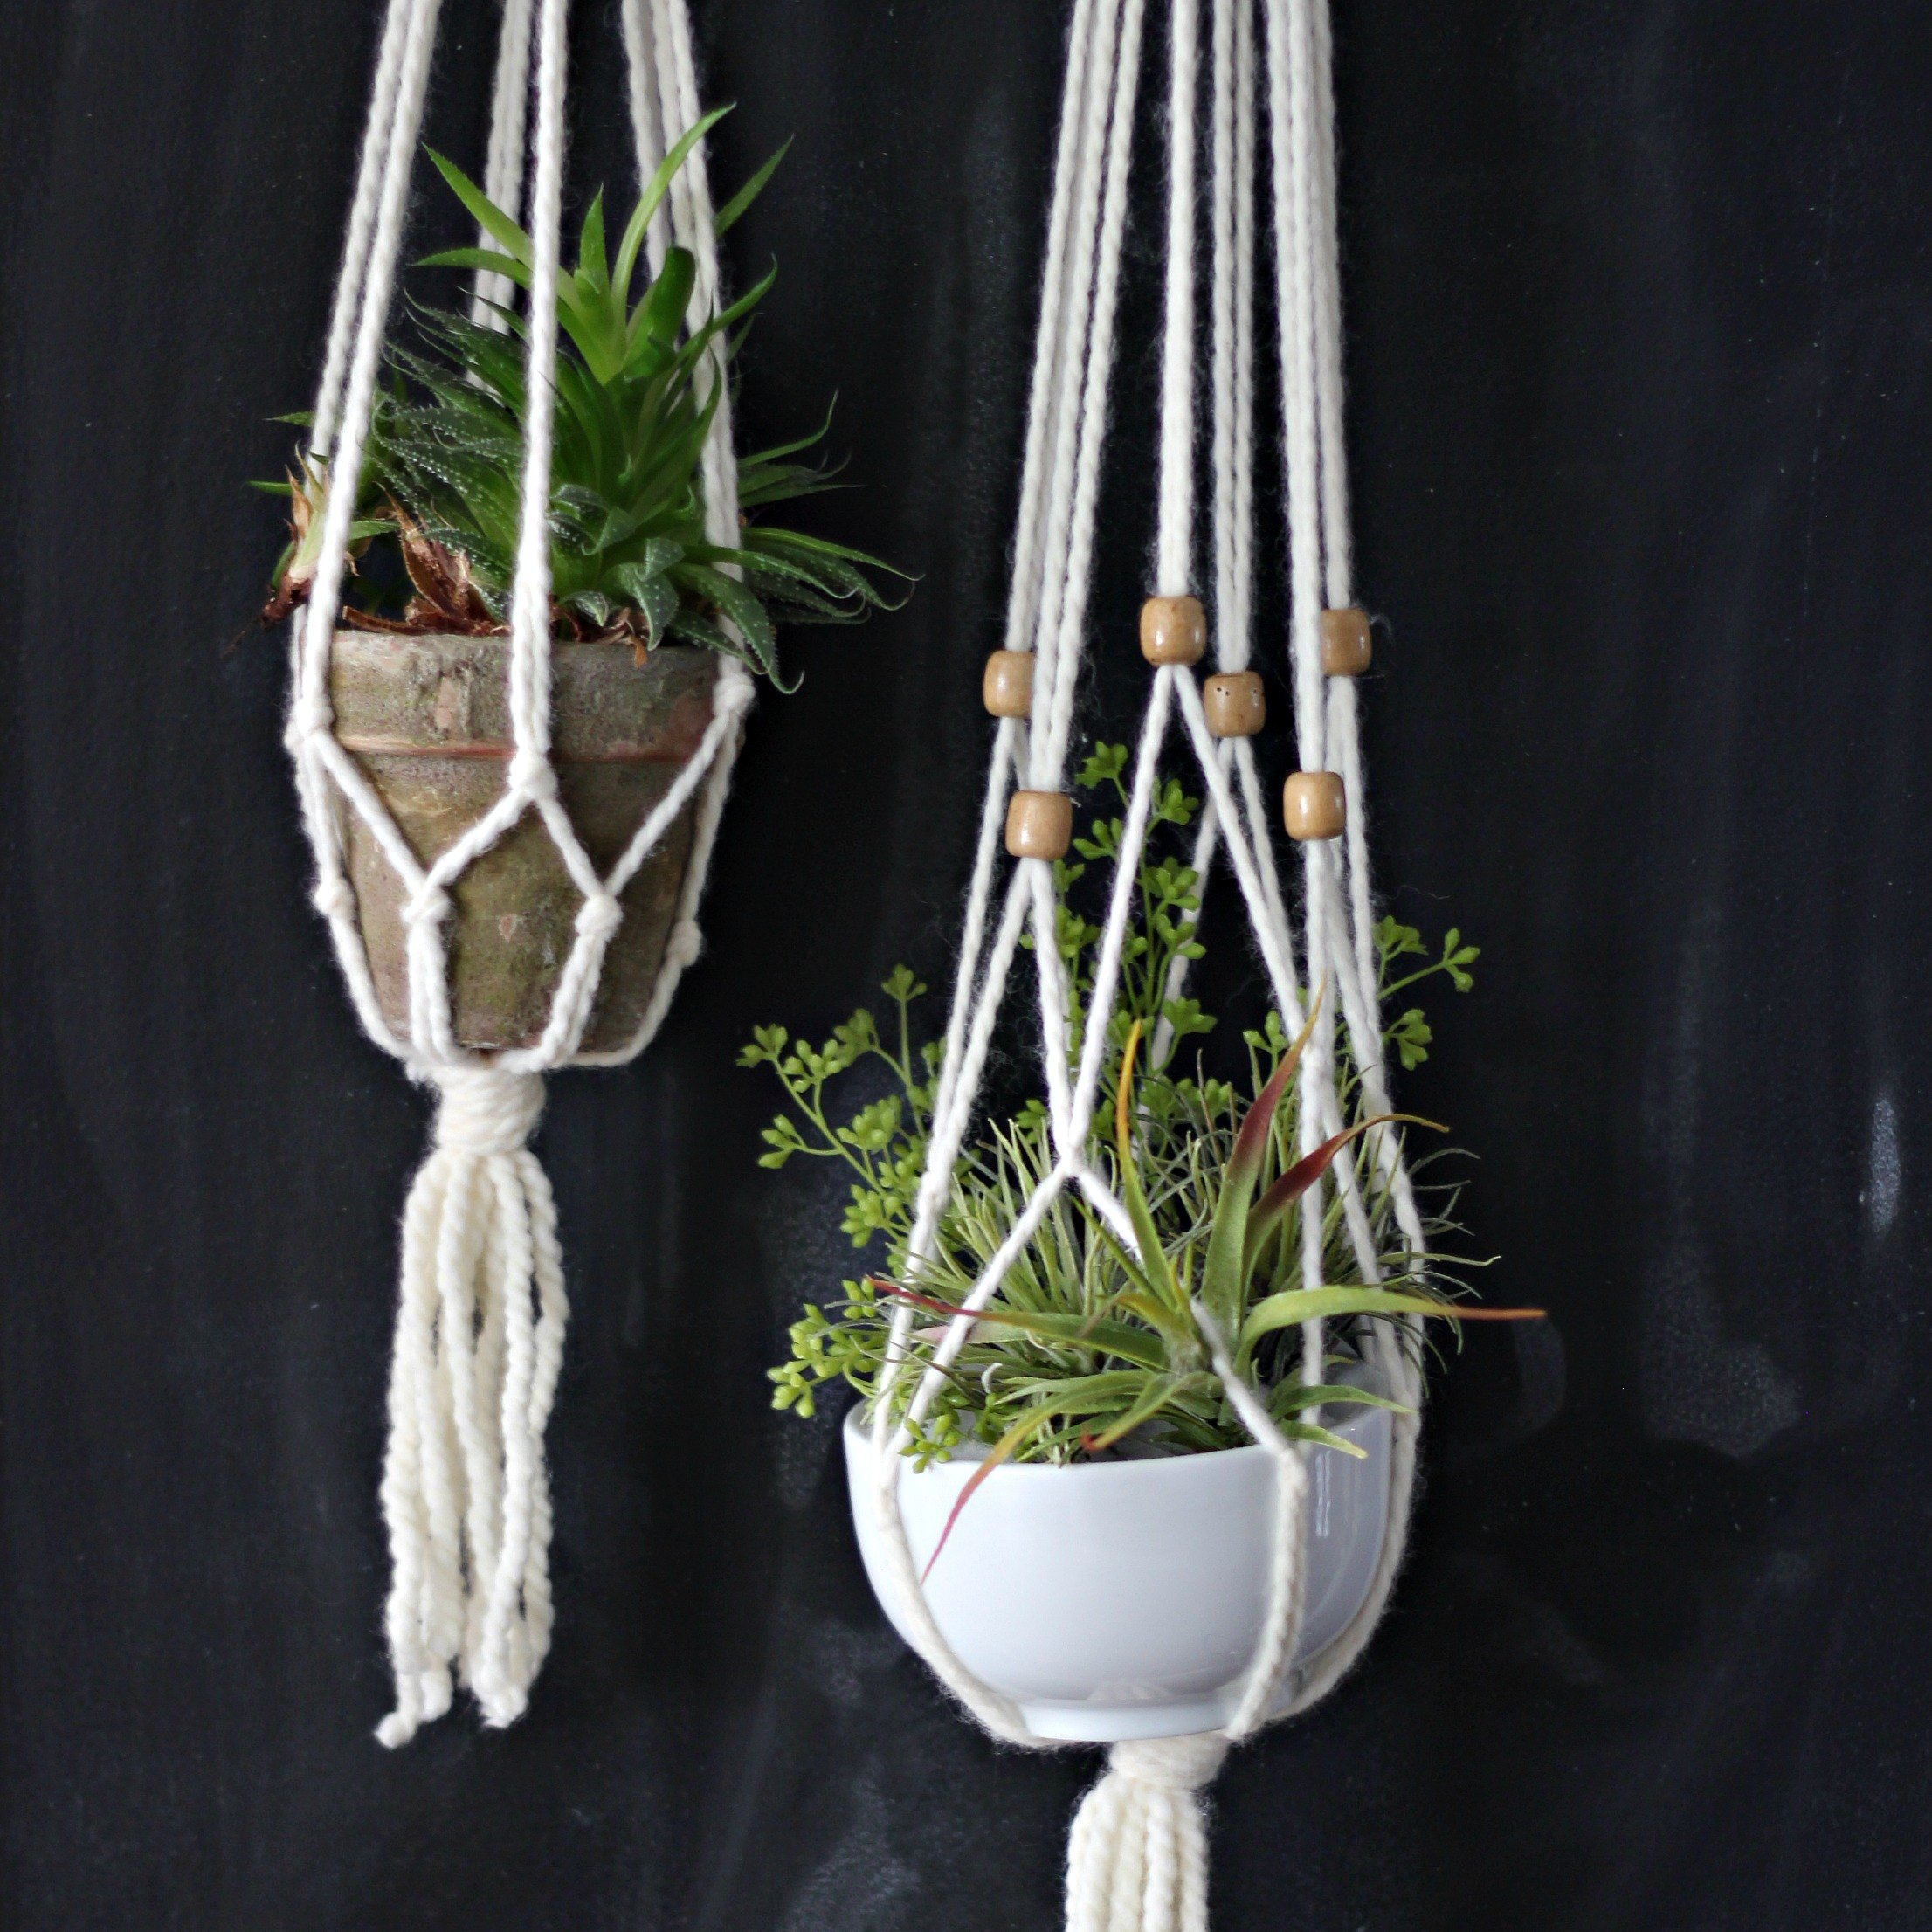 AKA: How to impress your loved one by making her the hanging potted plant holder that she wanted to buy, when you really didn't know what the heck you were doing. Making a Potted plant hanger out of a Key ring, Rope or twine & two Beers.